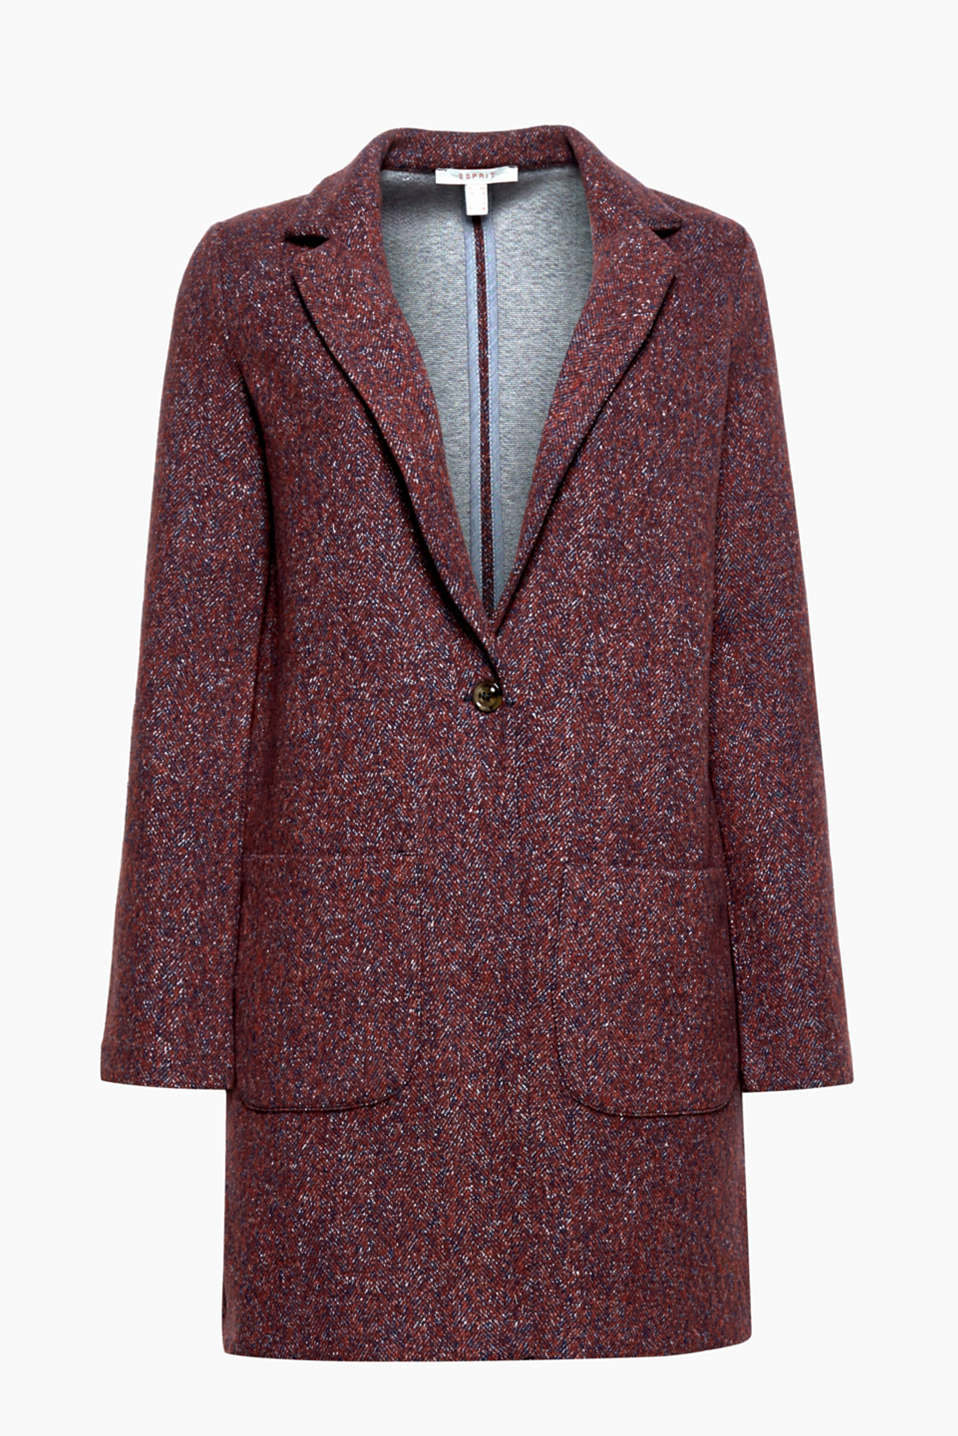 This comfy jersey coat with a herringbone pattern can be worn on its own in autumn and as an indoor piece in winter!